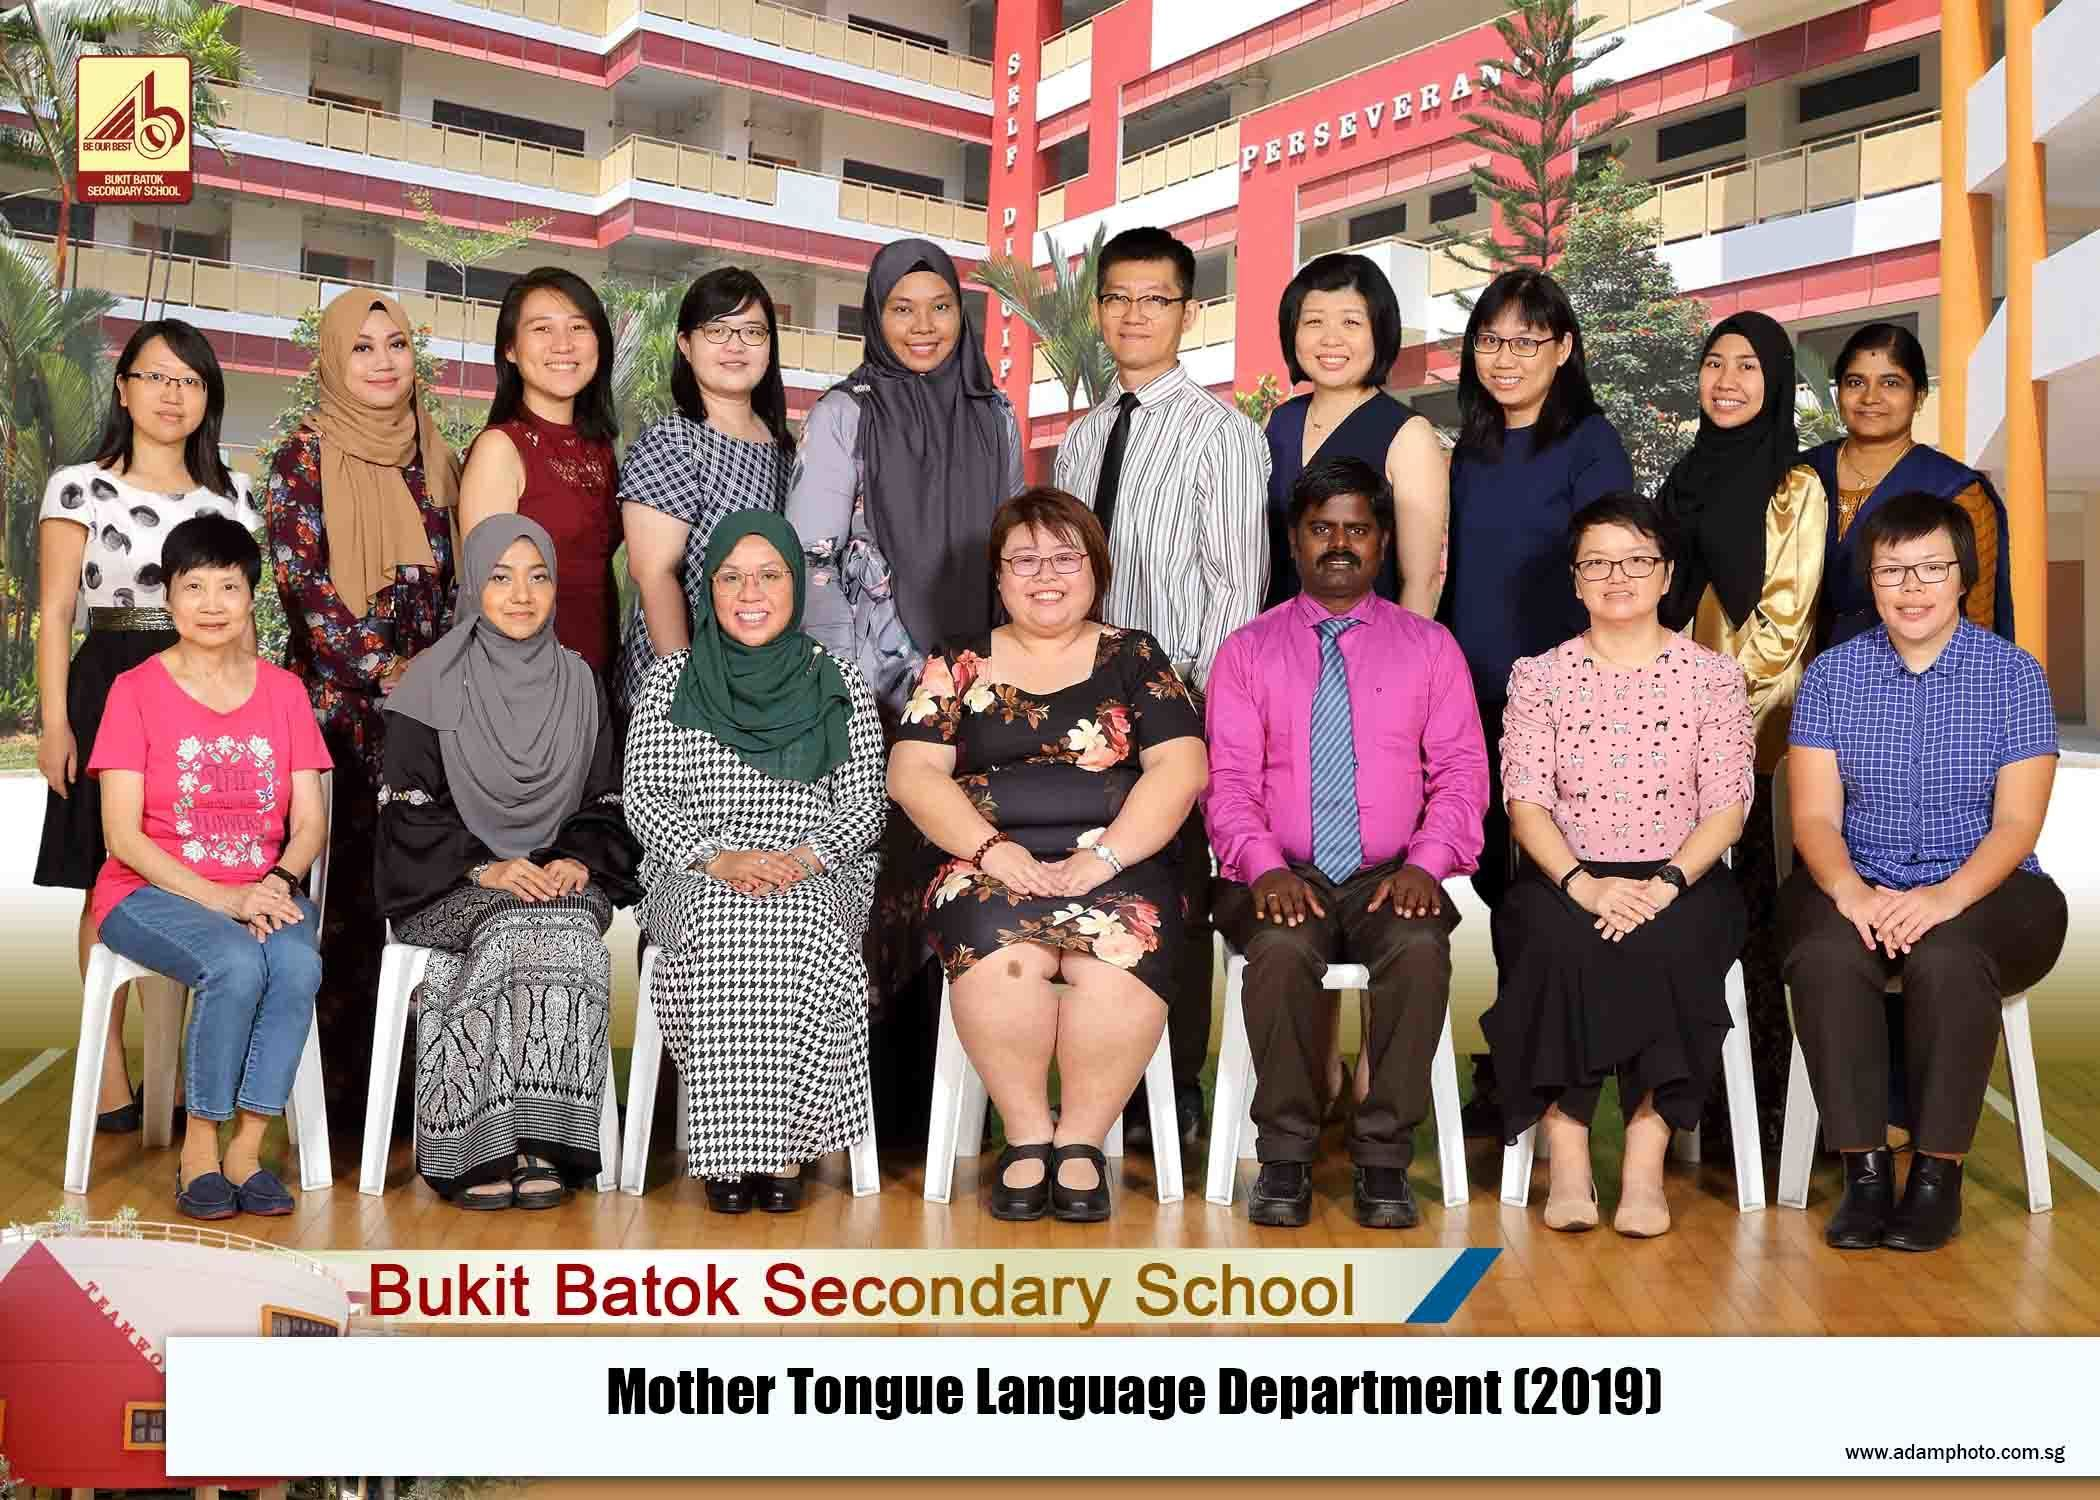 mother tongue language department 2.jpg